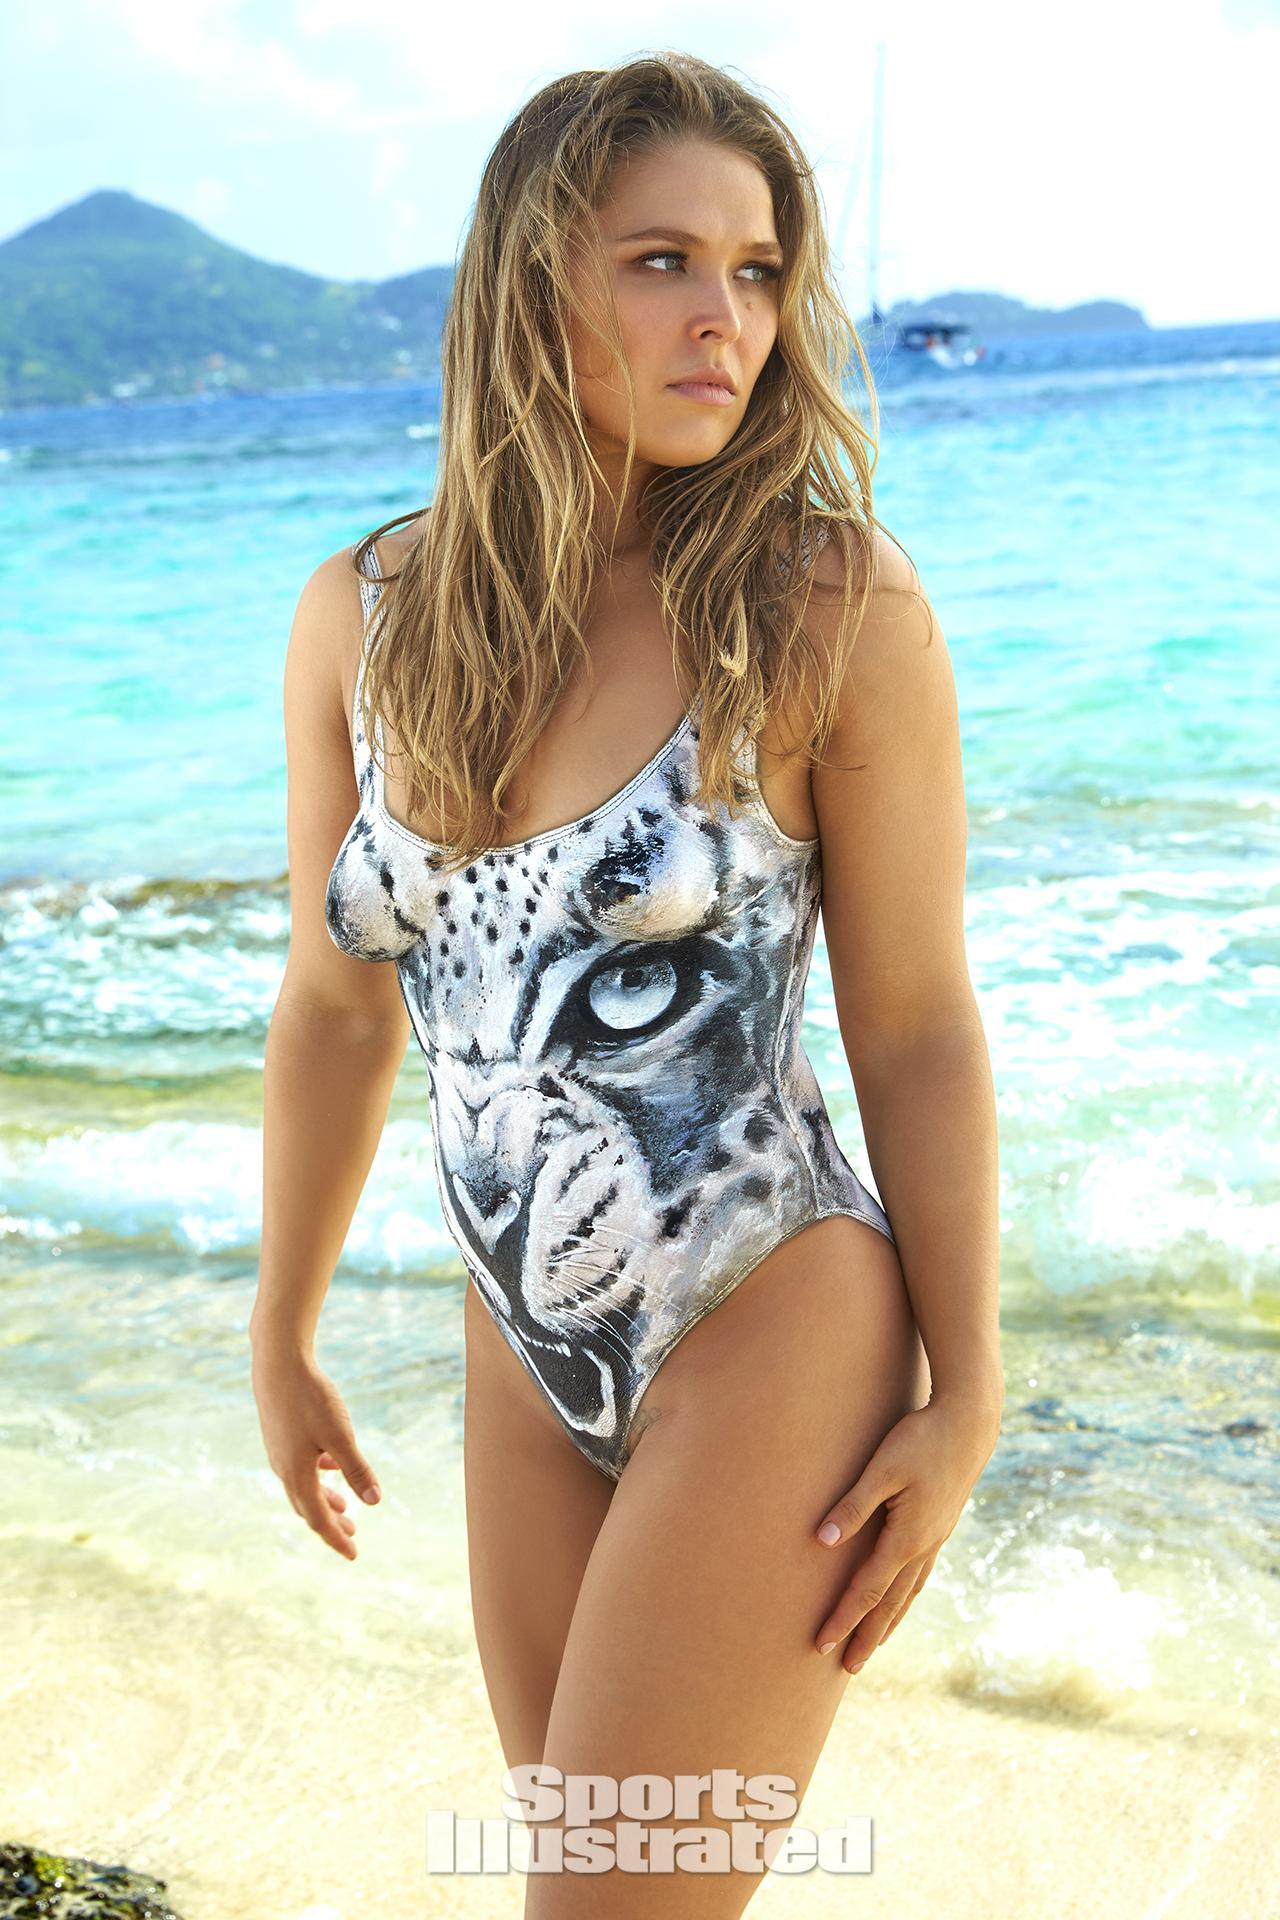 ronda-rousey-foi-capa-da-revista-sports-illustrated-so-de-bodypaint8